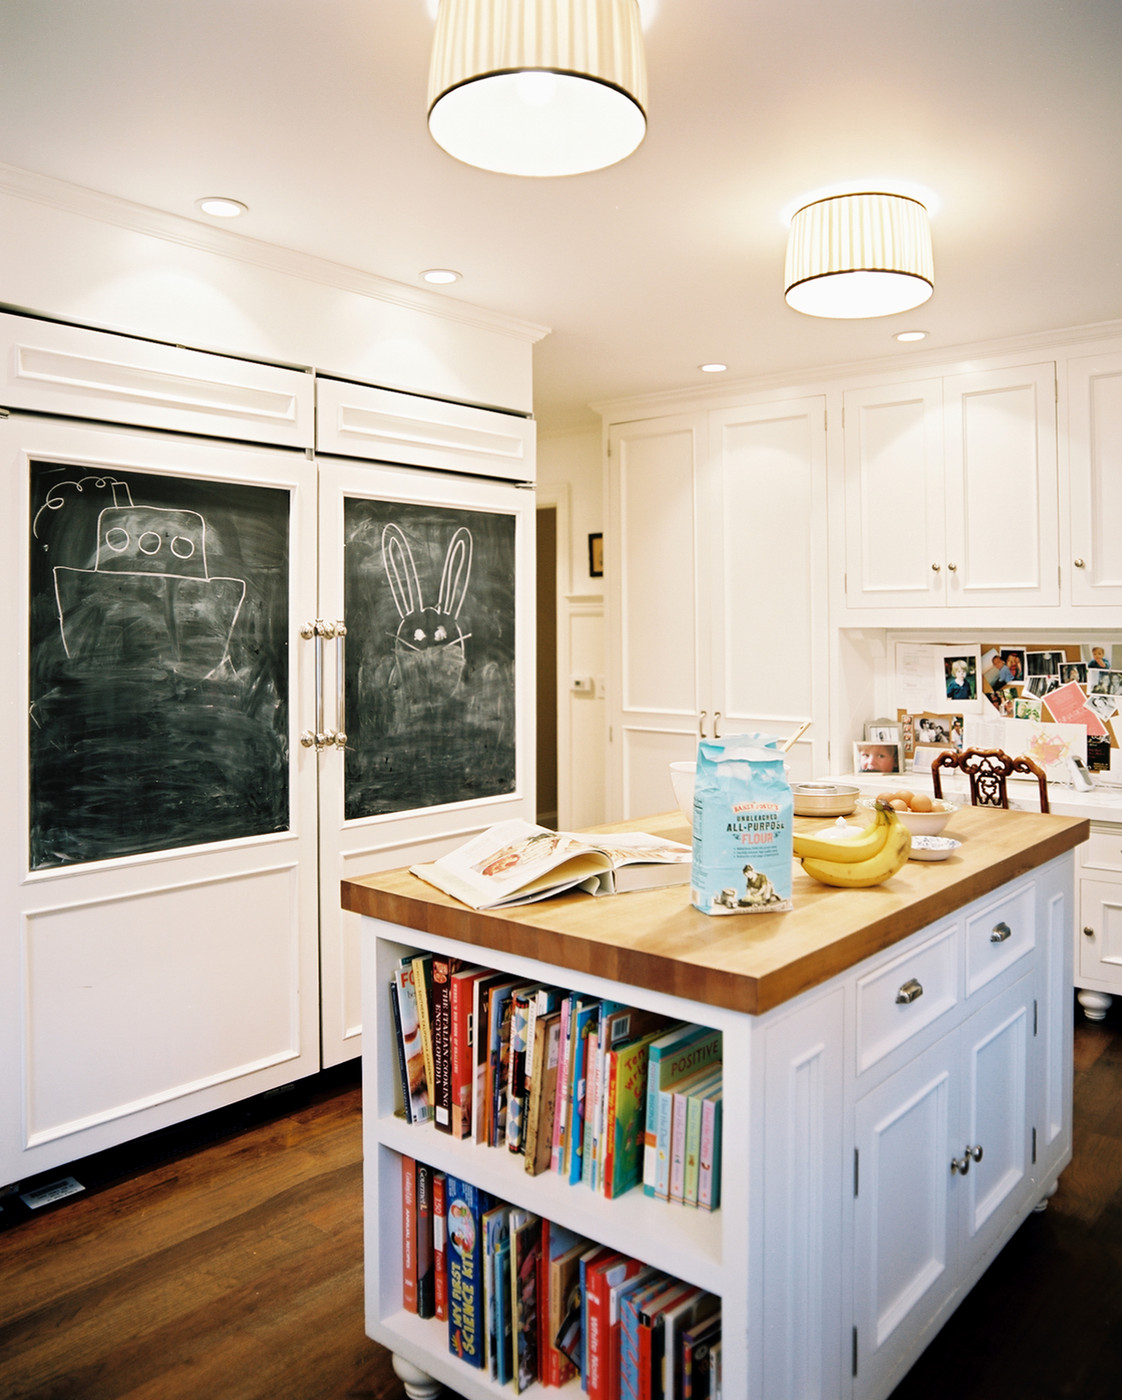 Chalkboard photos design ideas remodel and decor lonny for Chalkboard kitchen ideas